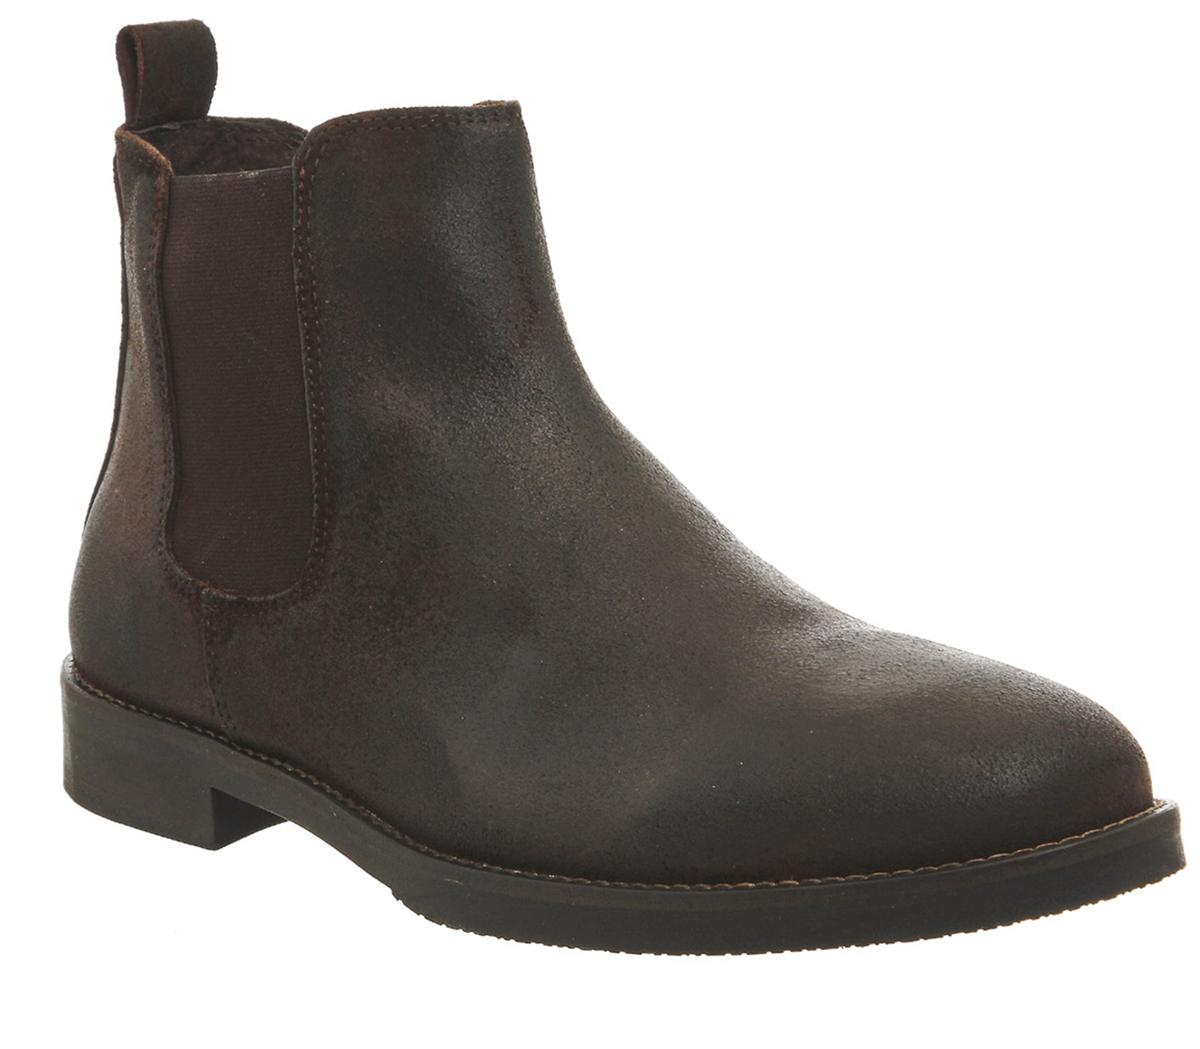 Cage Chelsea Boots